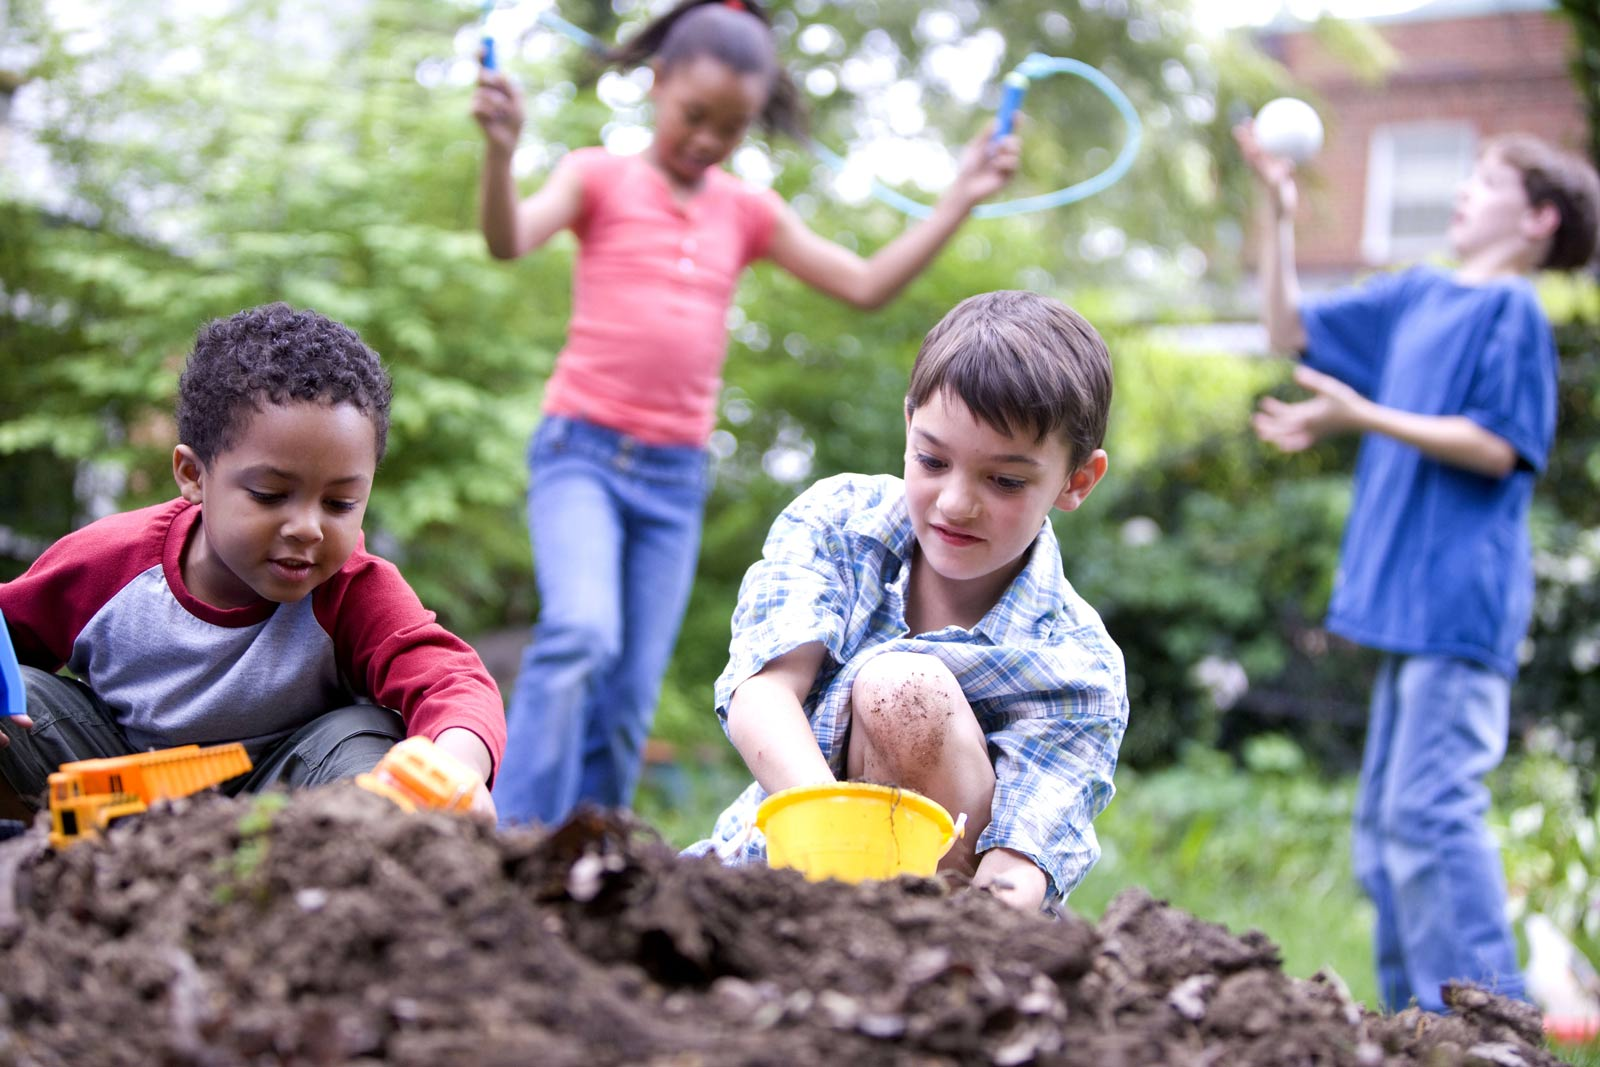 benefits of kids playing outdoors essay Perhaps more than physical benefits, playing outdoors can provide kids with a wealth of positive side effects both psychologically and socially it's also been found that playing outdoors can even help with number relationships as most outdoor games involve keeping score or some other form of.